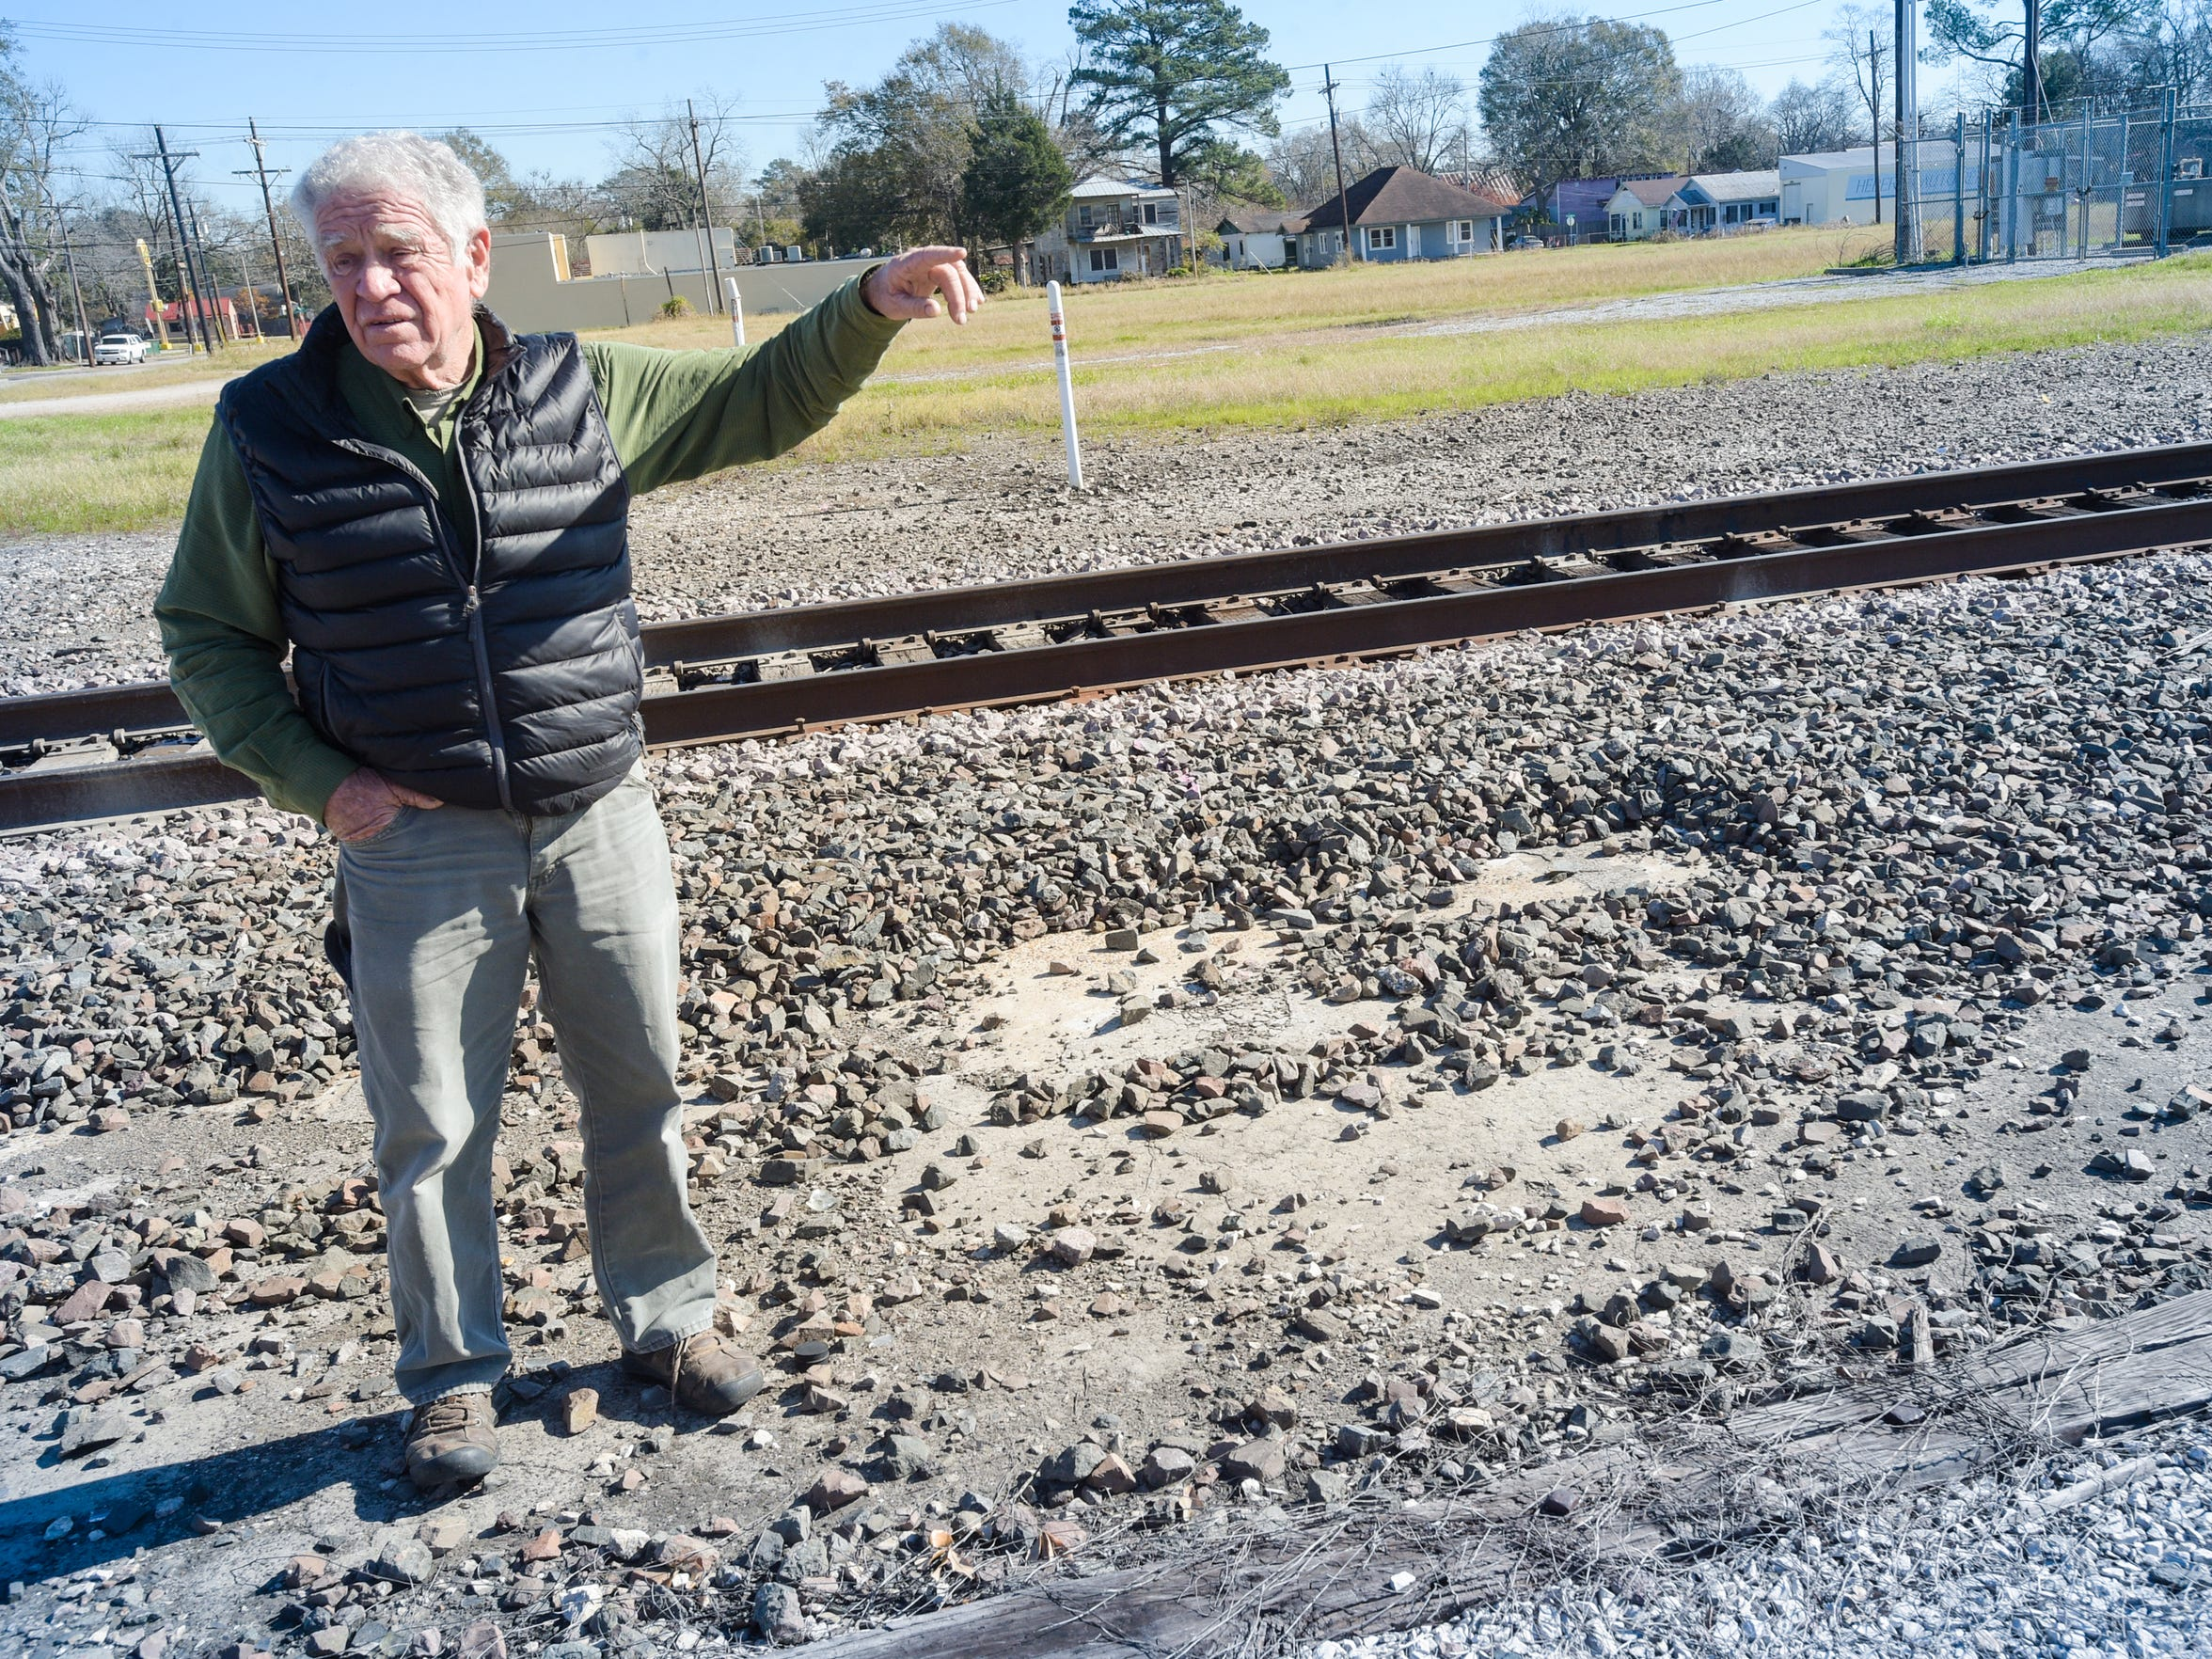 Harold Schoeffler believes an old rail yard maintenance area may contain environmental hazards that could be disrupted.